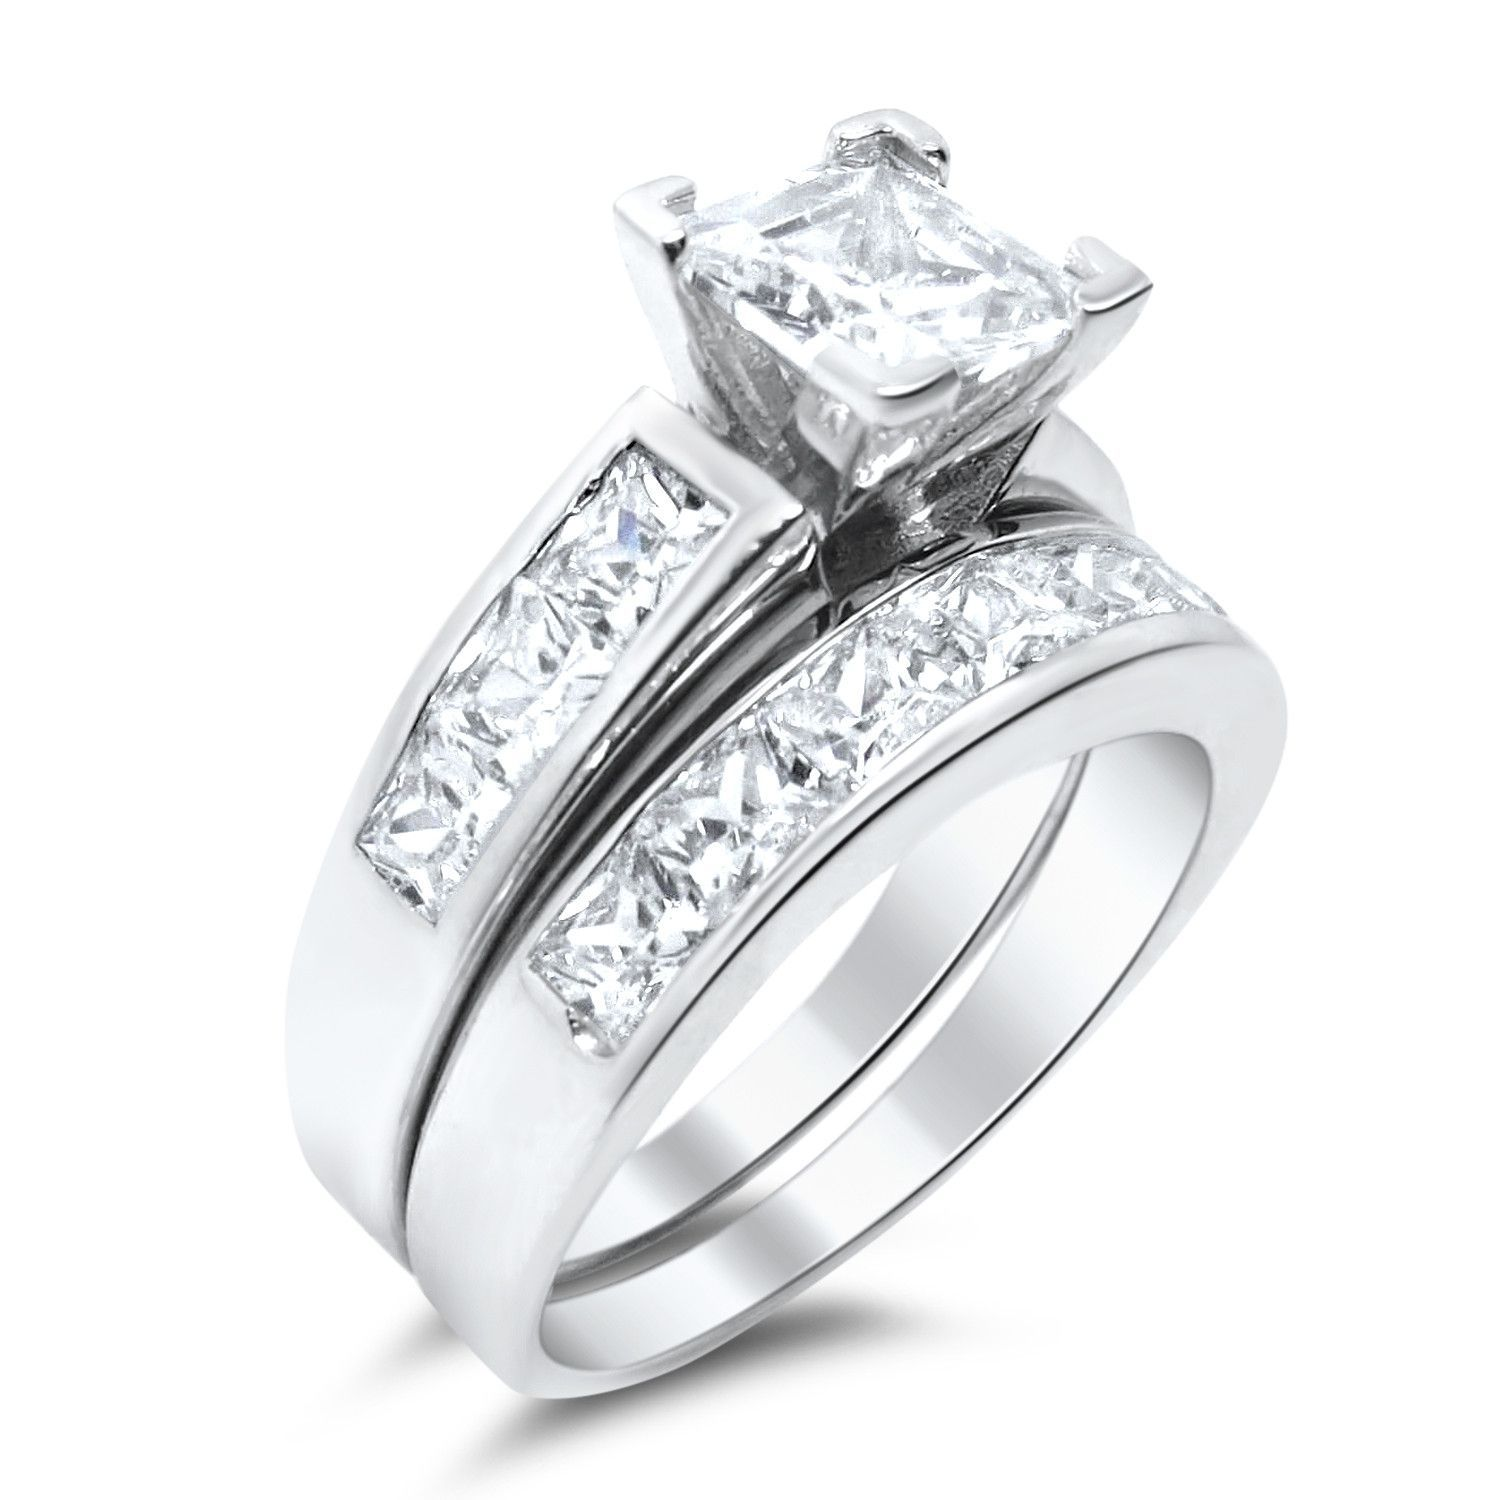 The Highest Quality Cubic Zirconia Wedding Ring Set Aaa Cz Stones That Look Real 925 Sterling Silver 1 Carat Center Stone